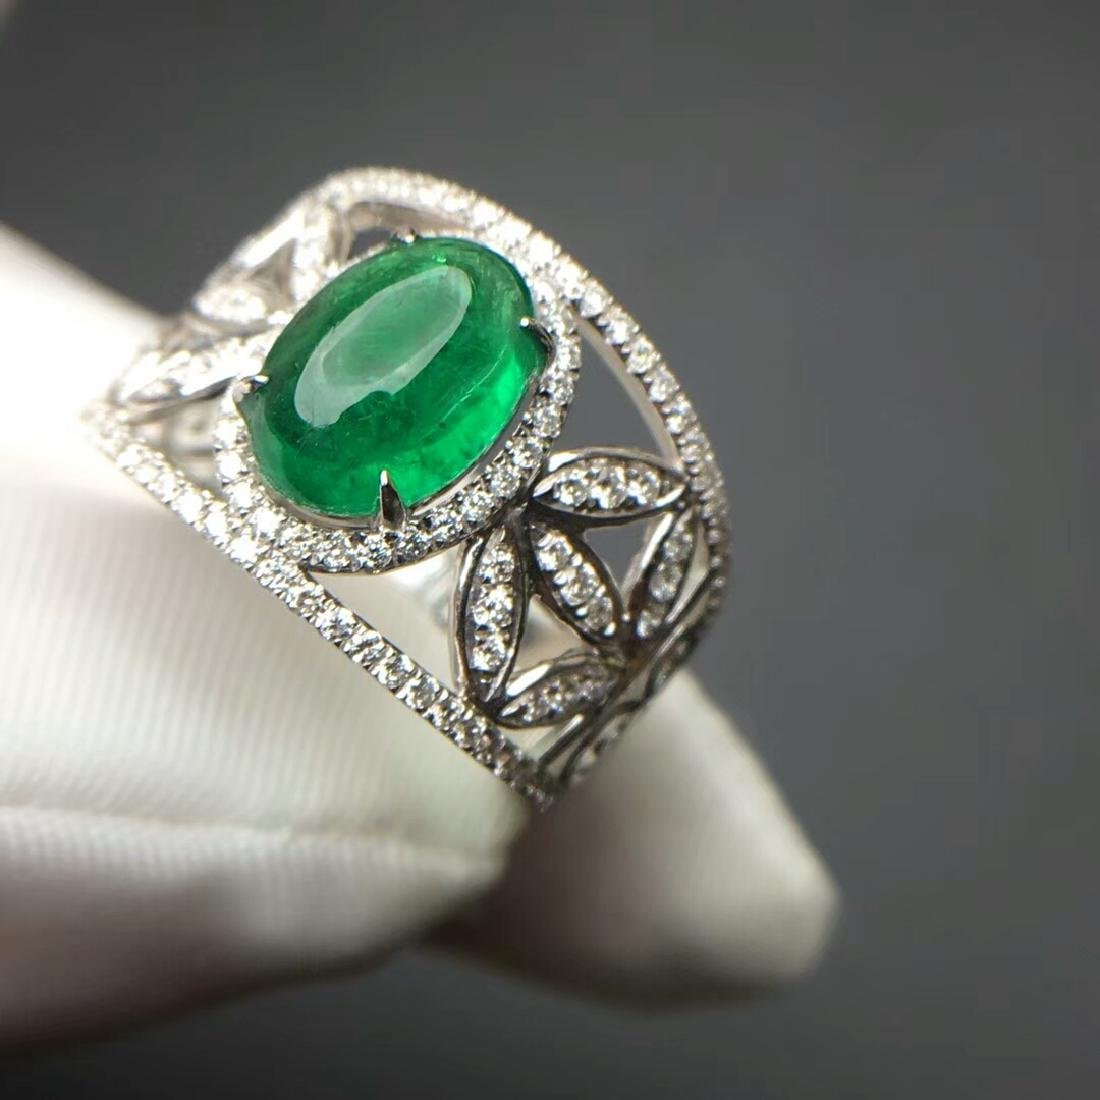 2.015 CTW Emerald & VS Diamond Ring 18K - 2